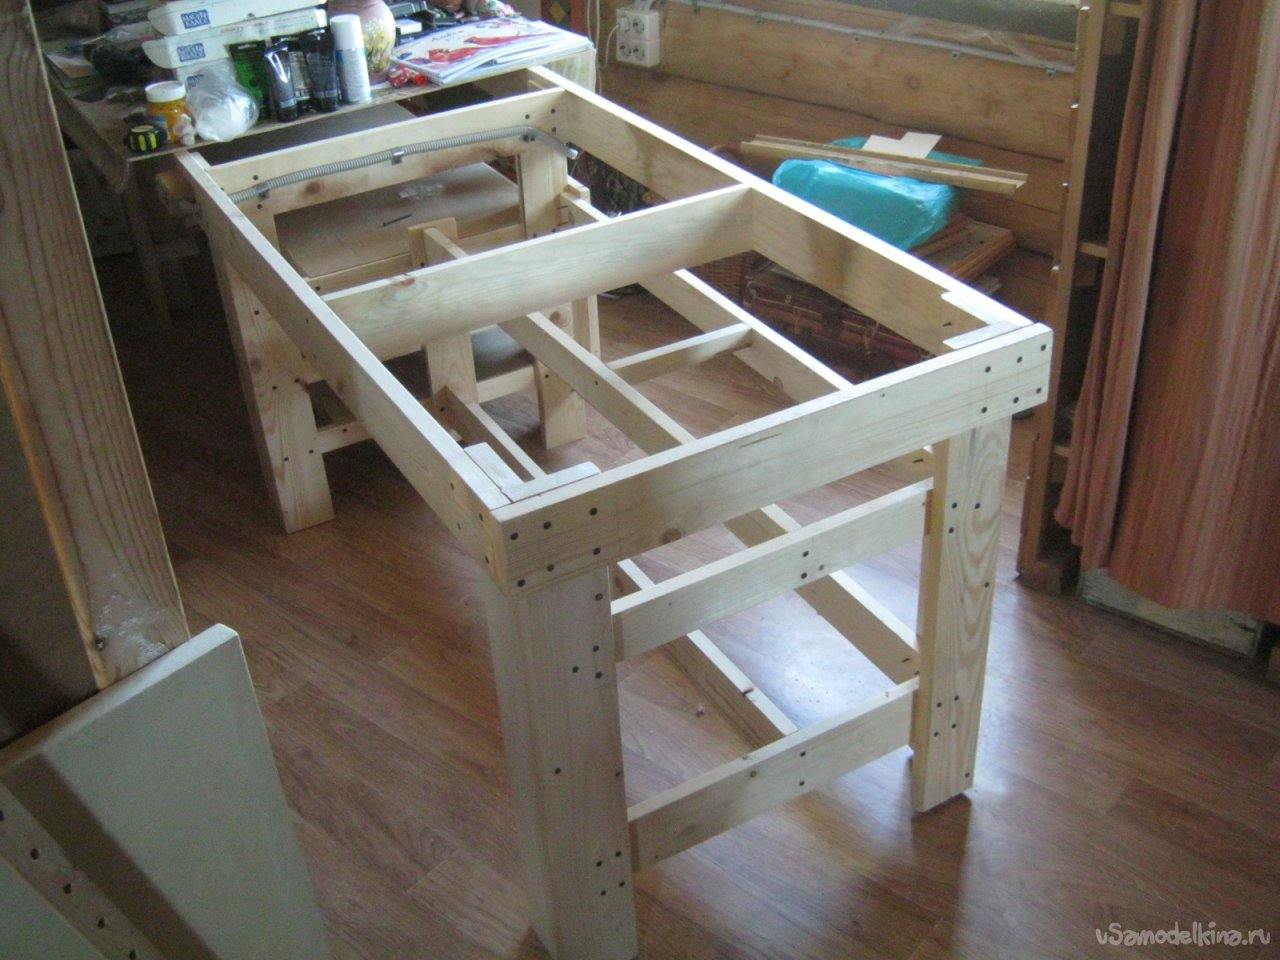 A simple utility table for an artist's home studio